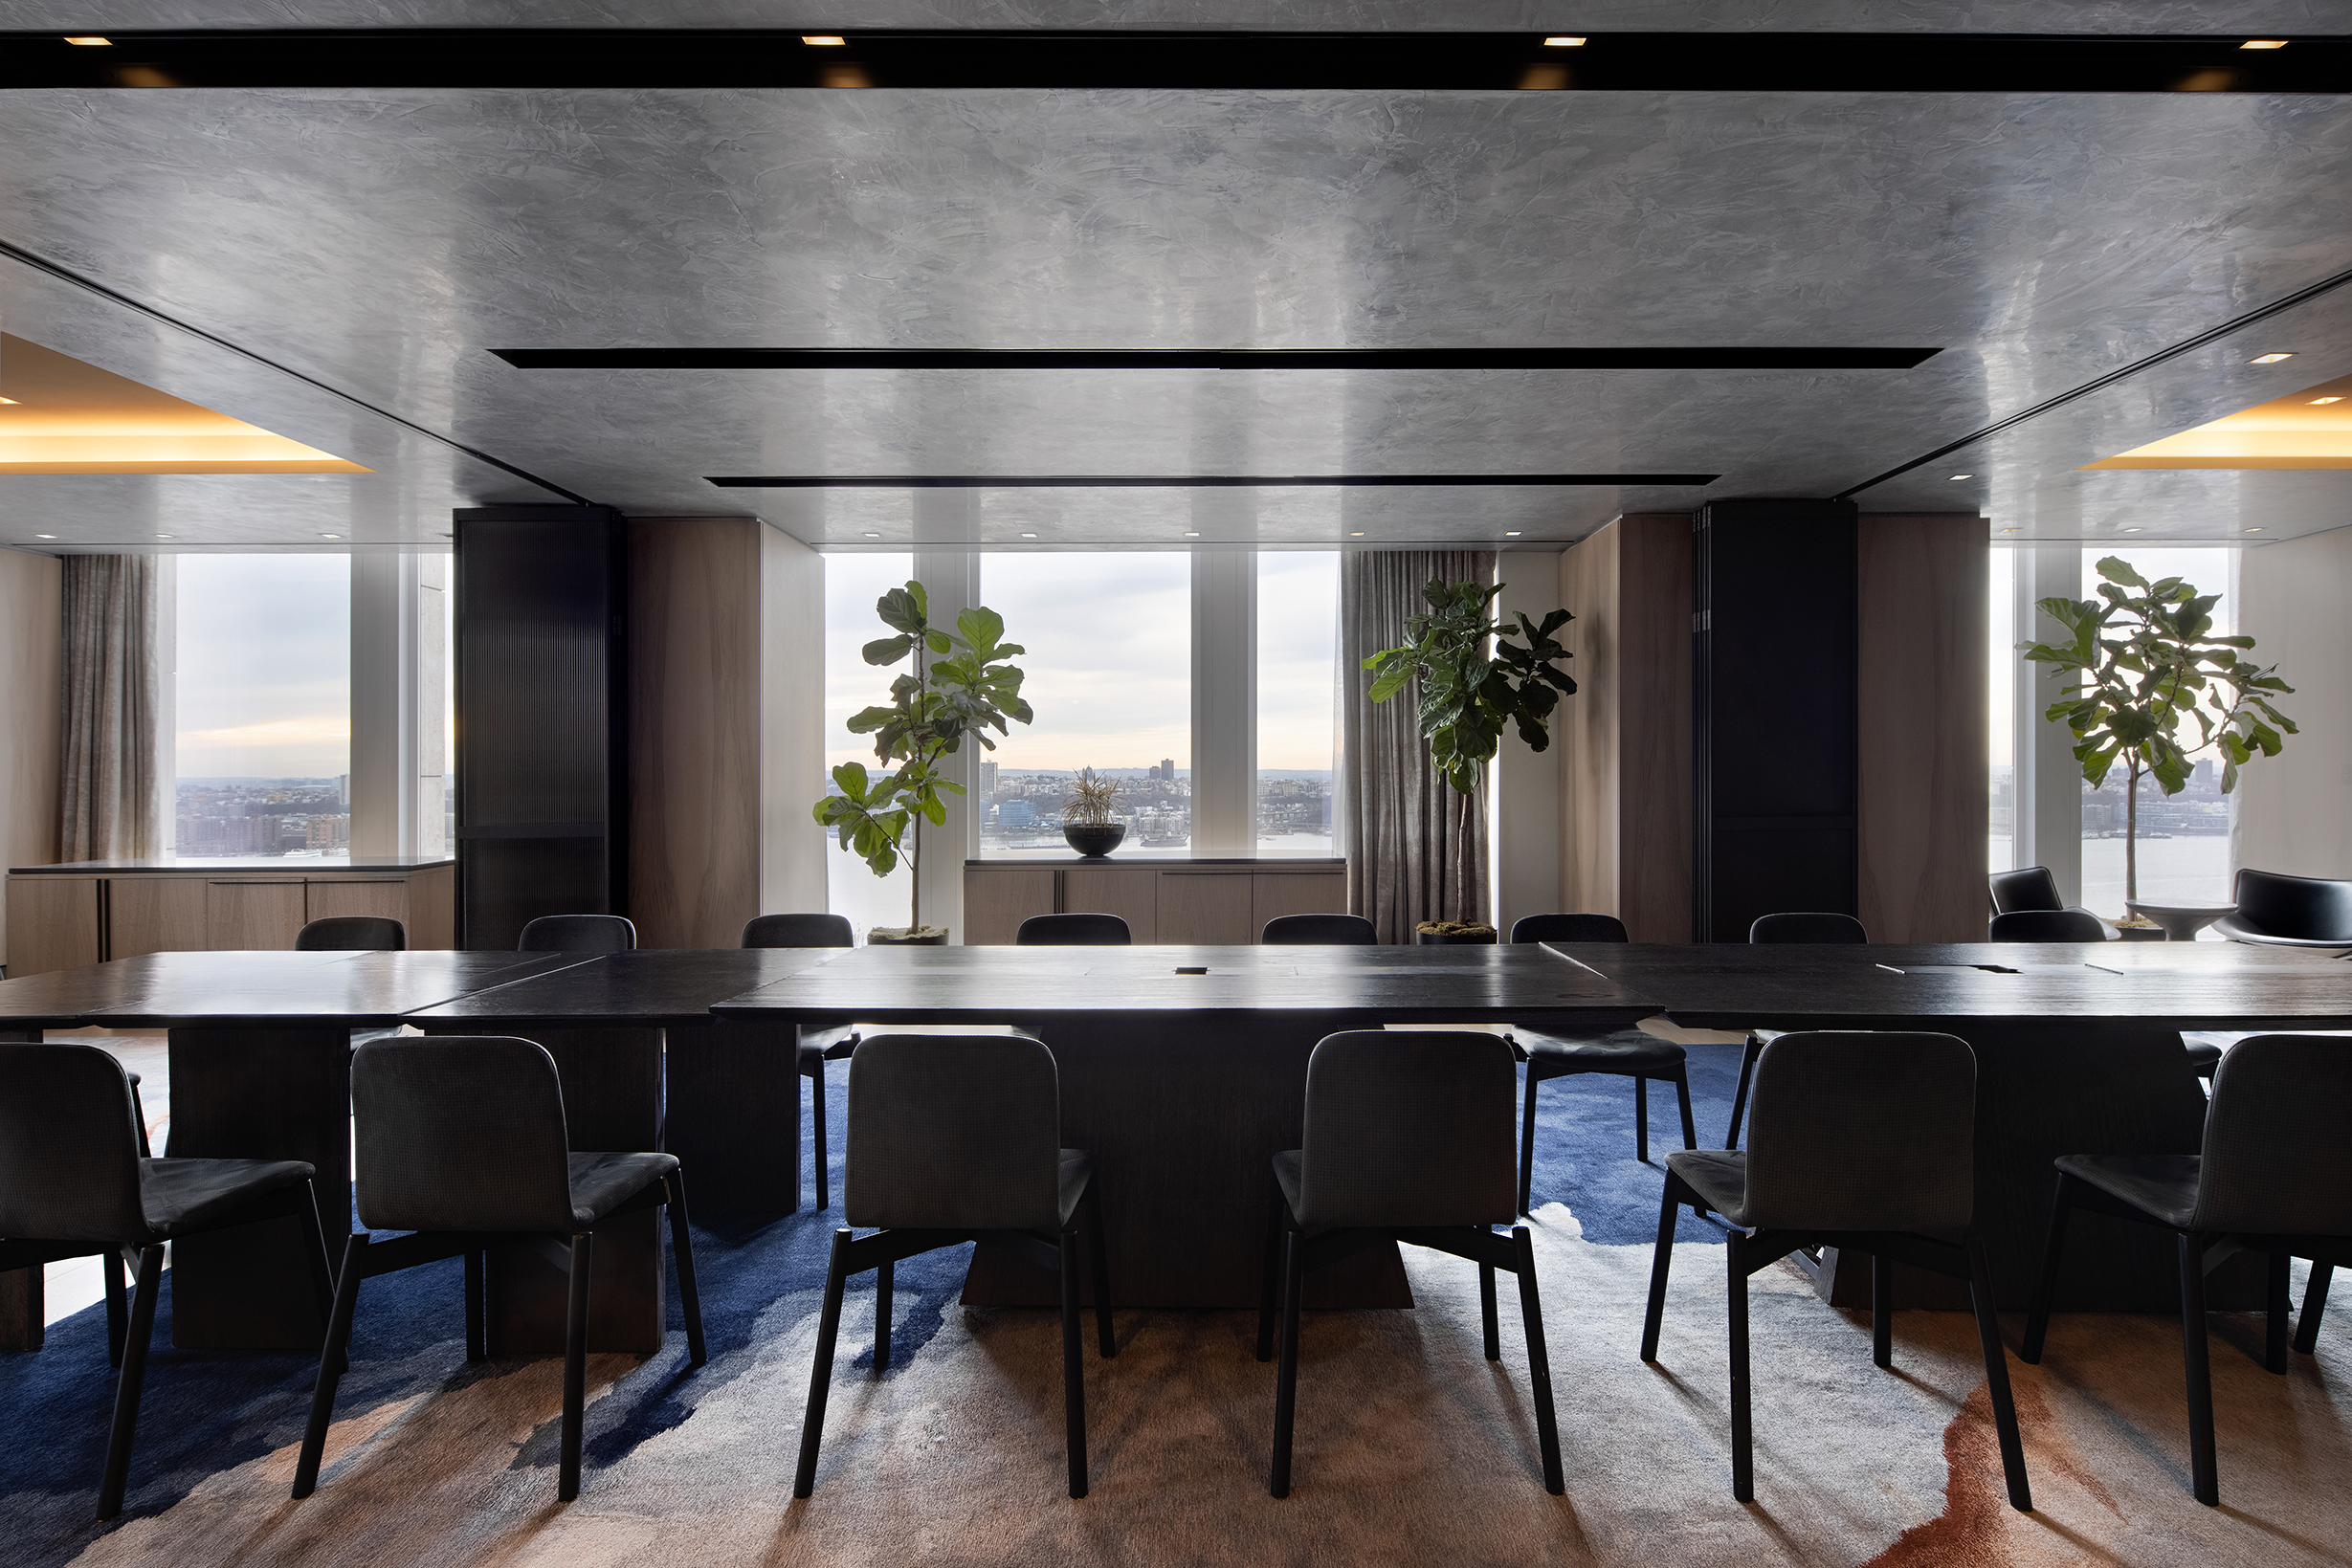 <Private dining room table facing the window